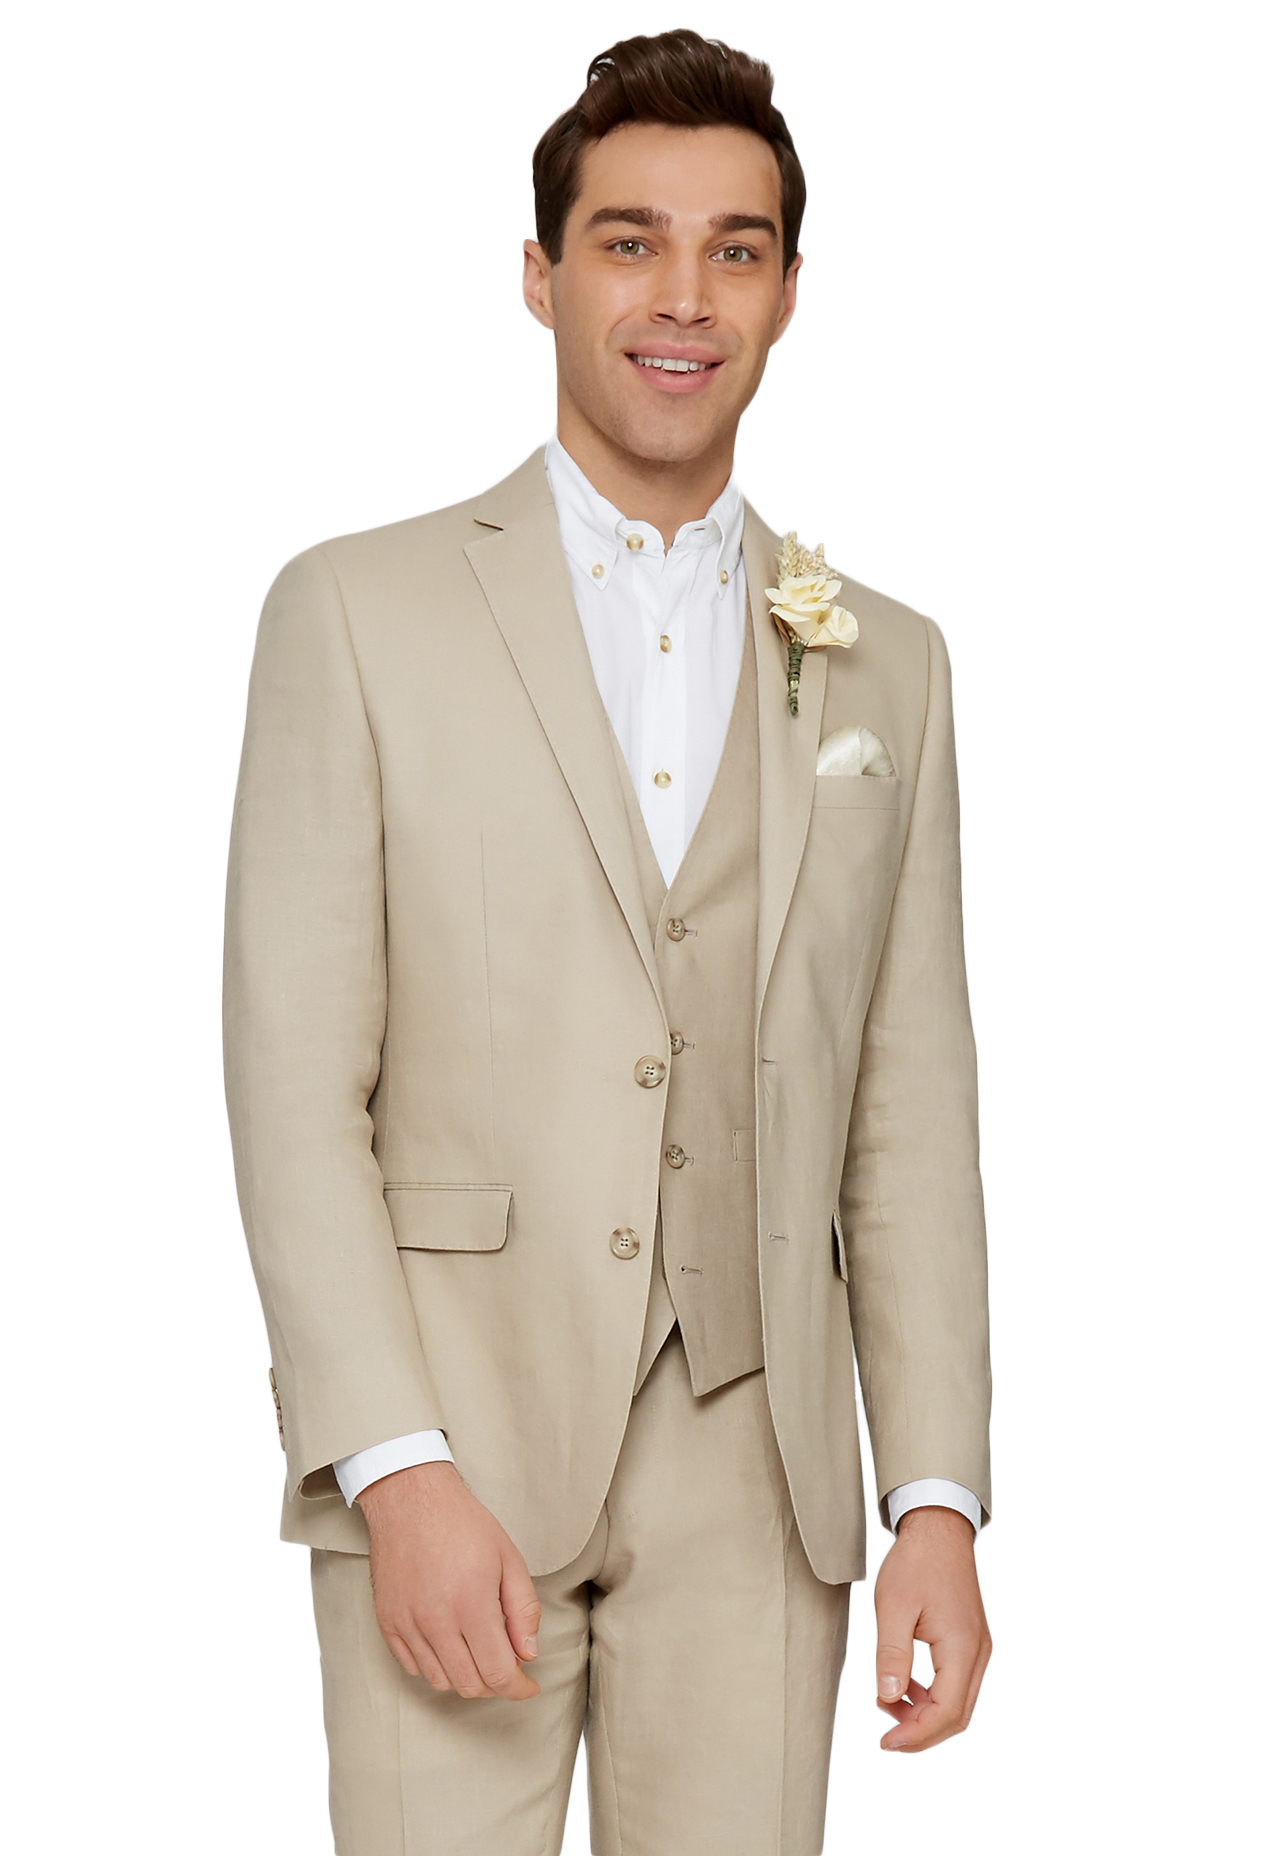 100% top quality top design reliable quality Details about Moss 1851 Mens Stone Beige Suit Jacket Tailored Fit Linen Two  Button Formal